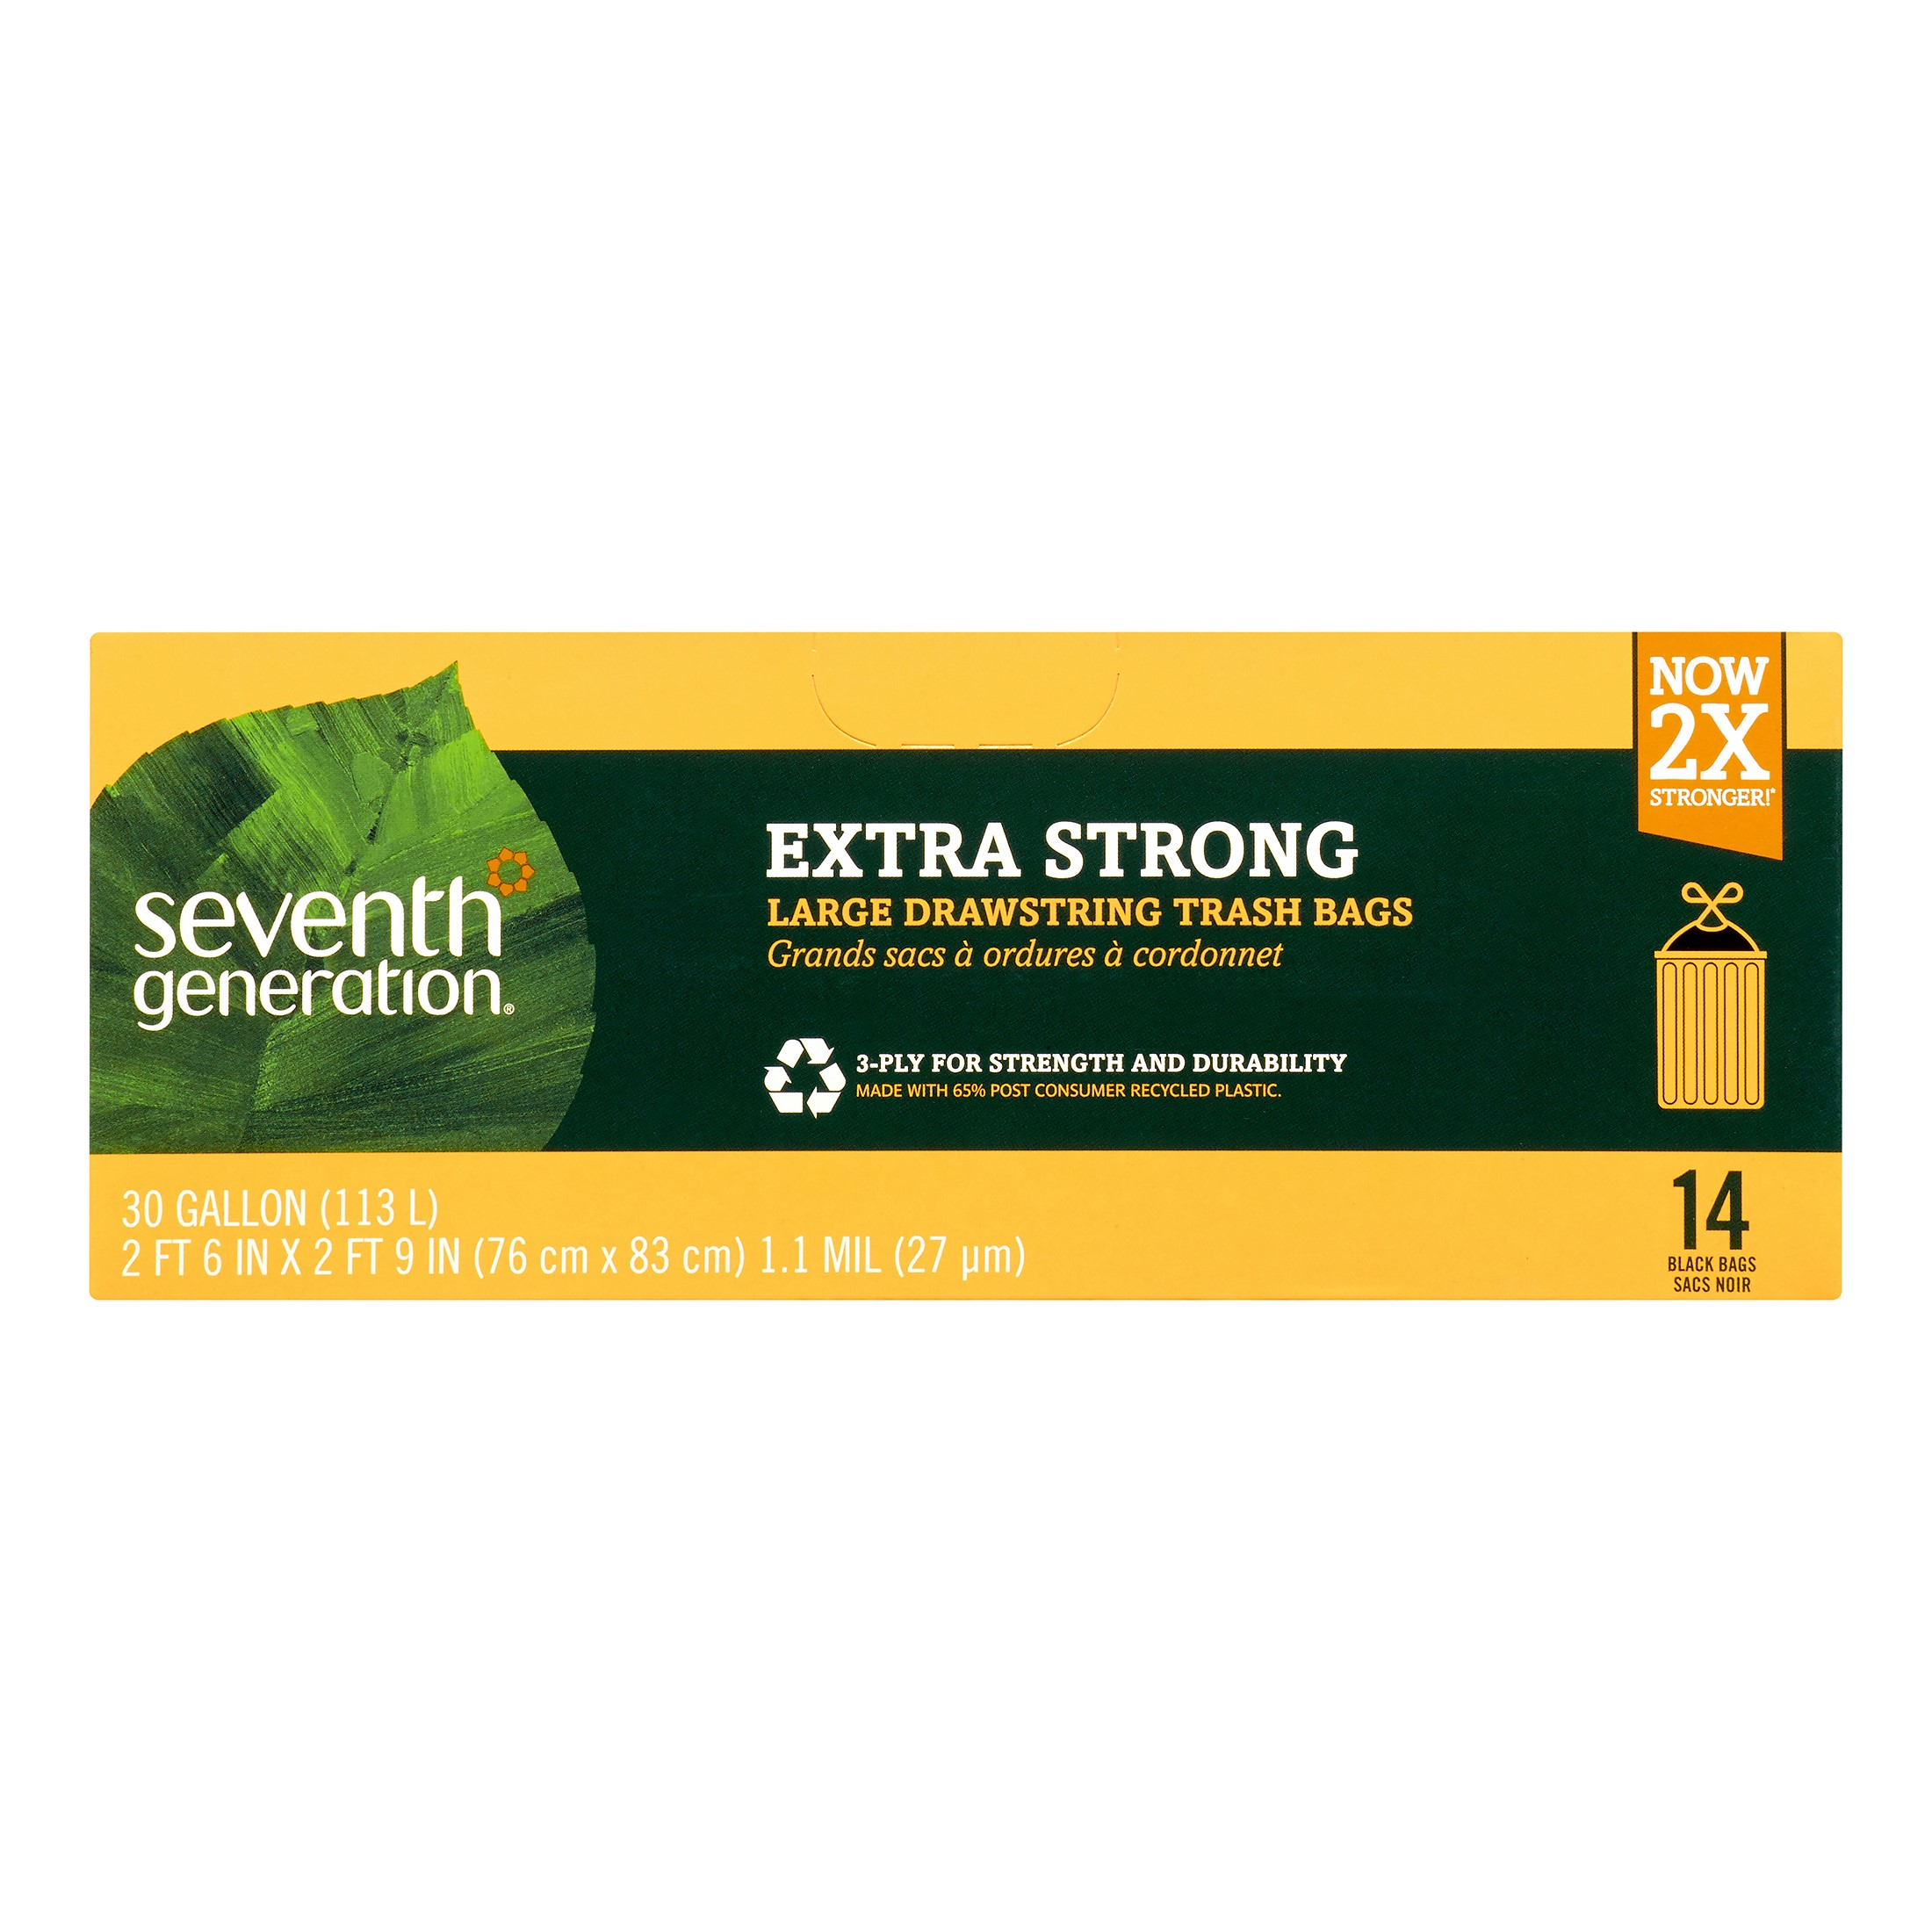 Seventh Generation™ Black 30 gal. Extra Strong Large Drawstring Trash Bags 14 ct Box